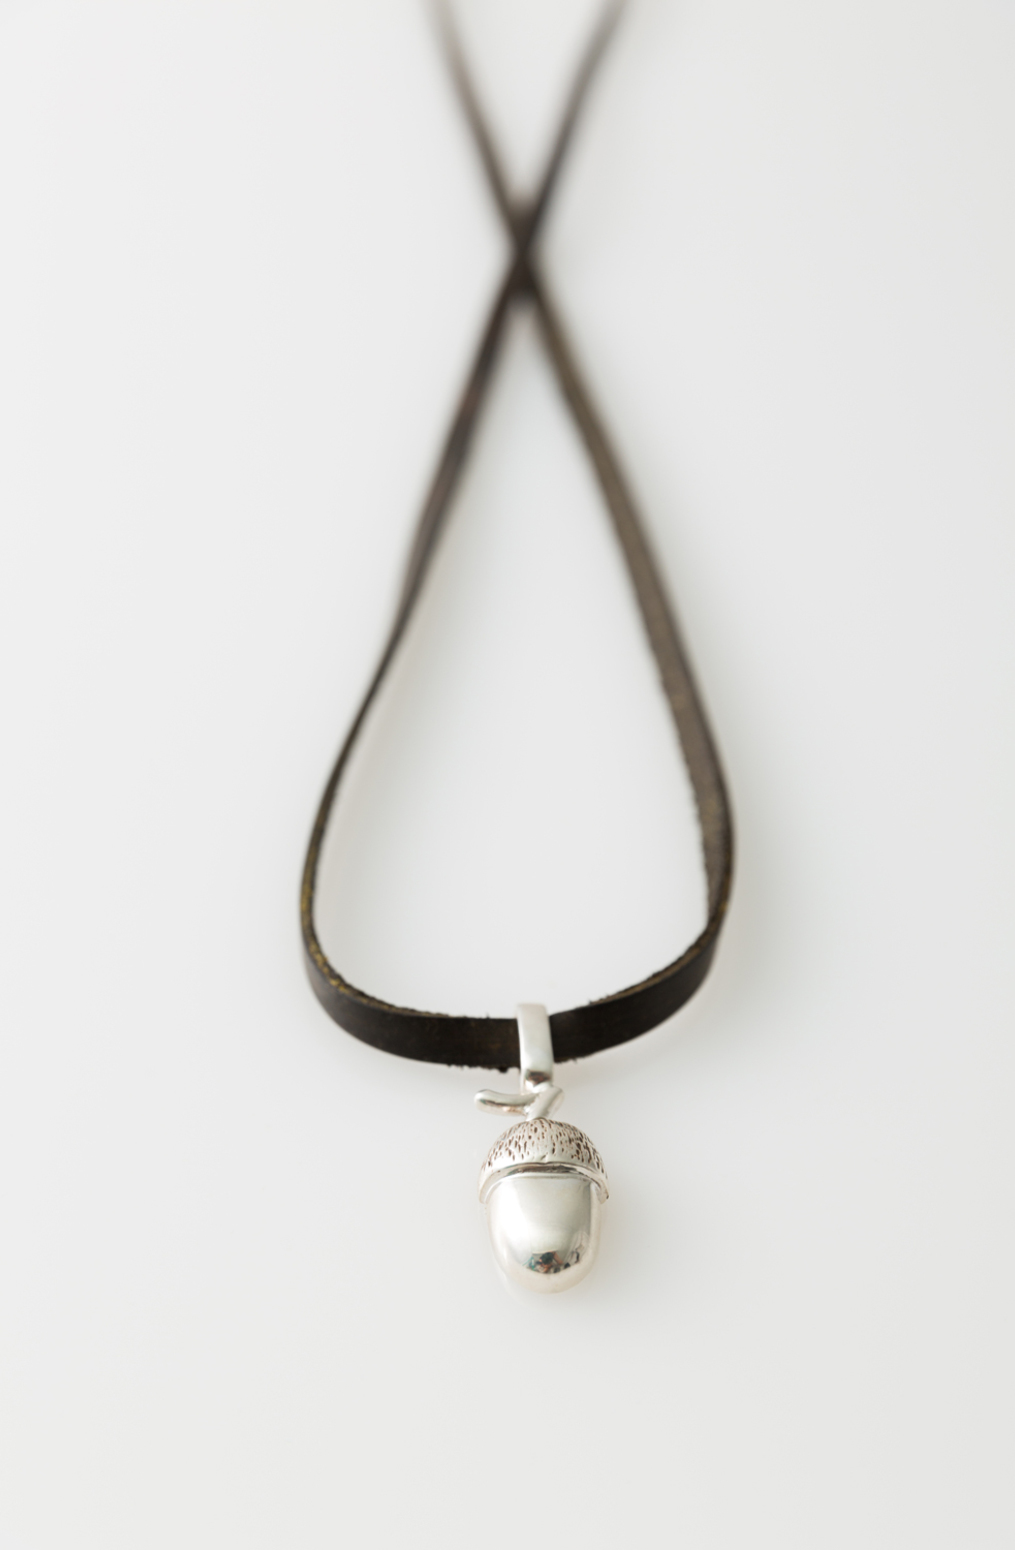 Alabama chanin acorn pendant necklace